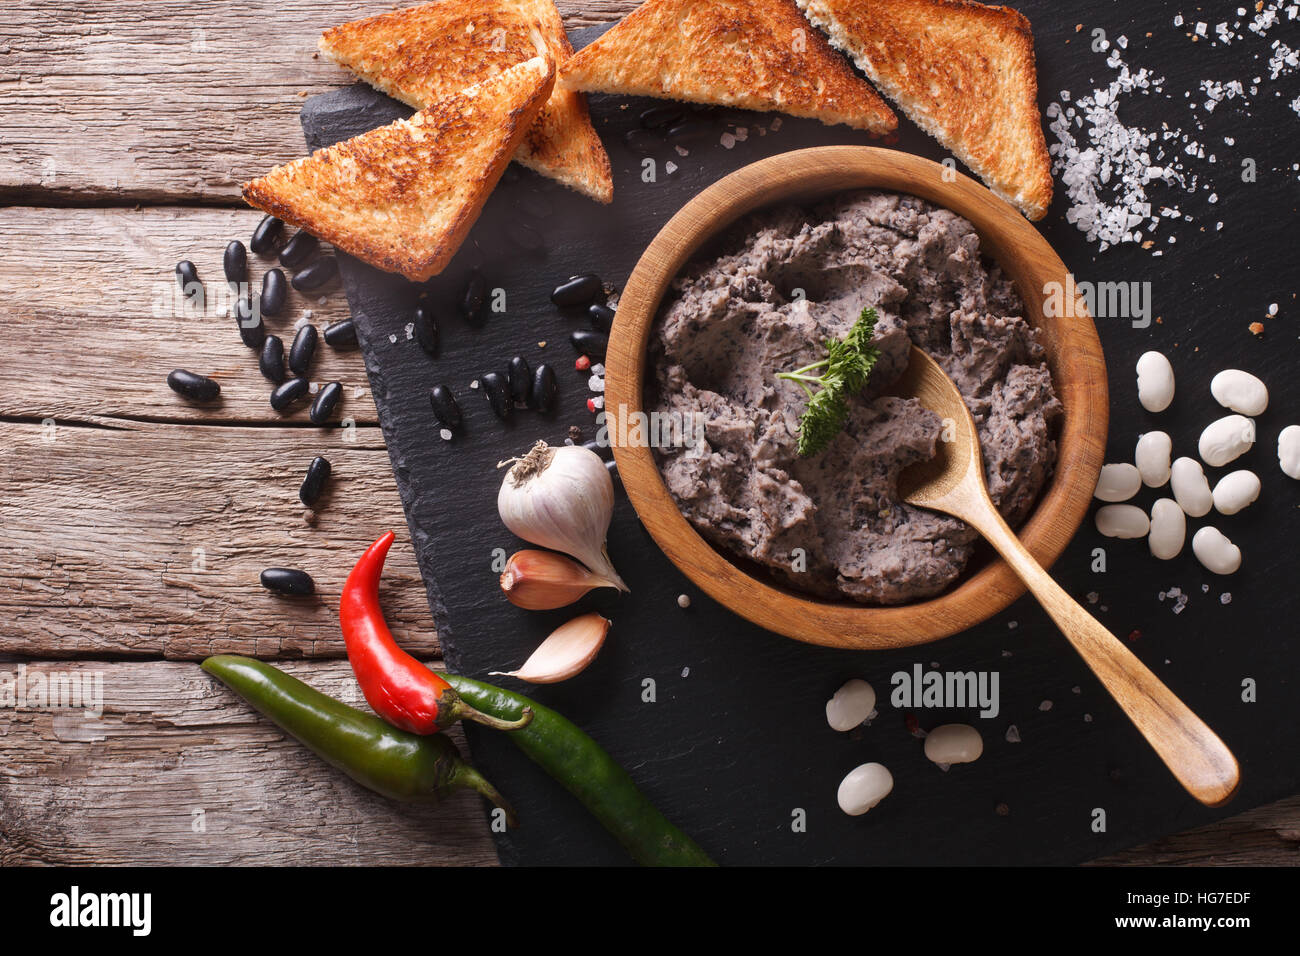 Frijoles refritos with ingredients on a table close-up. horizontal view from above - Stock Image